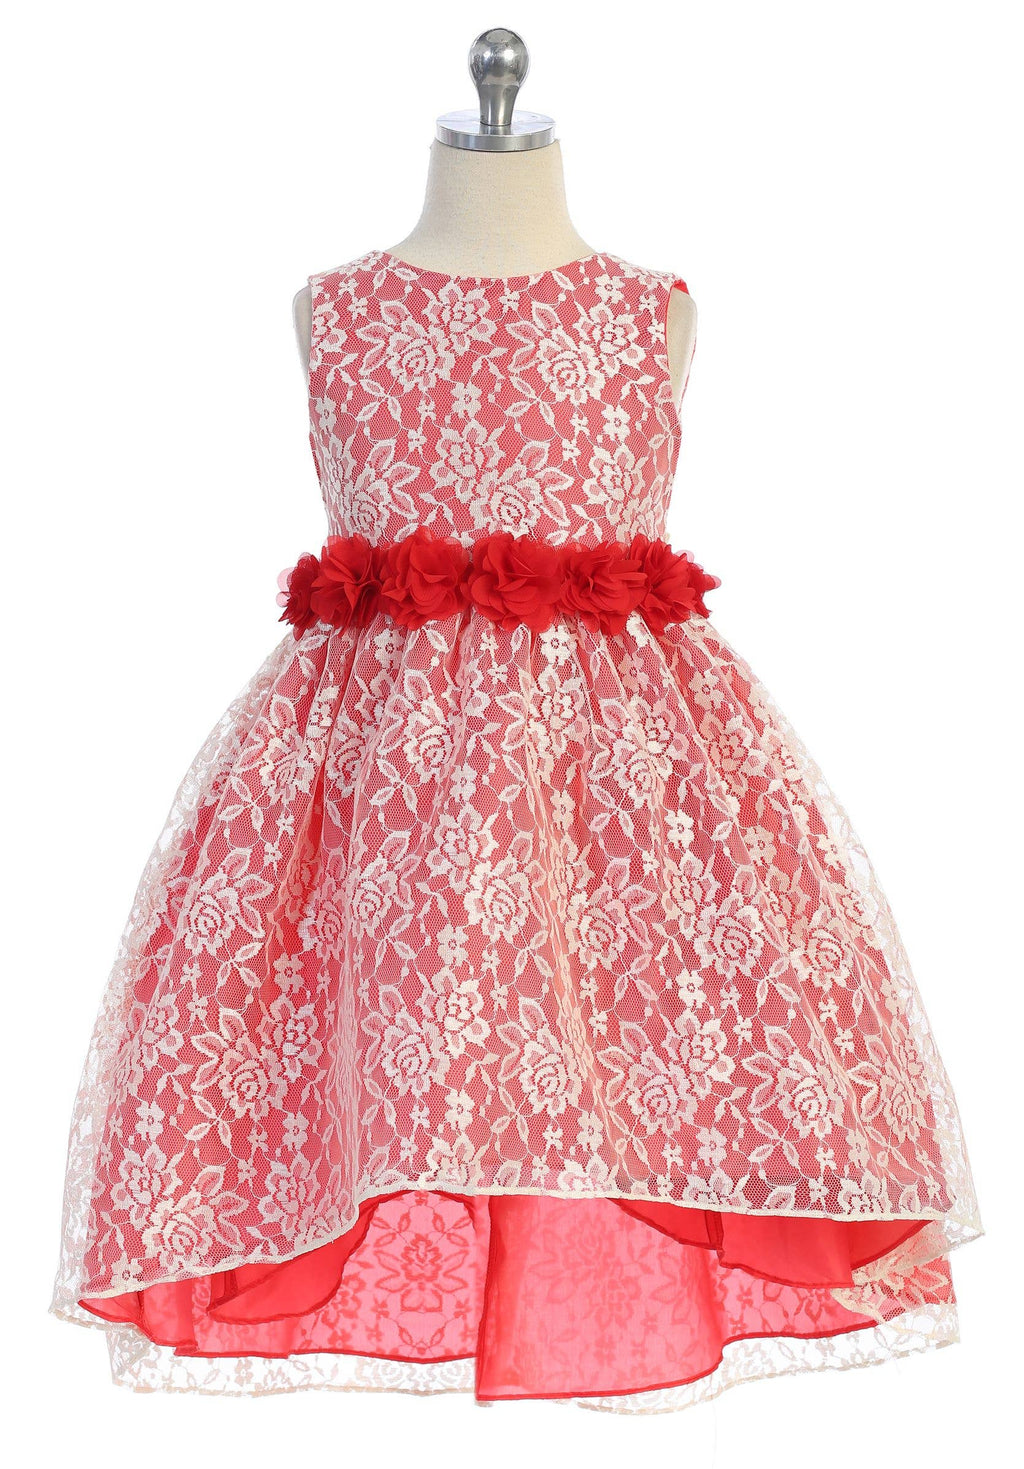 Red-Ivory Hi-Lo Embroidery Lace Floral Dress